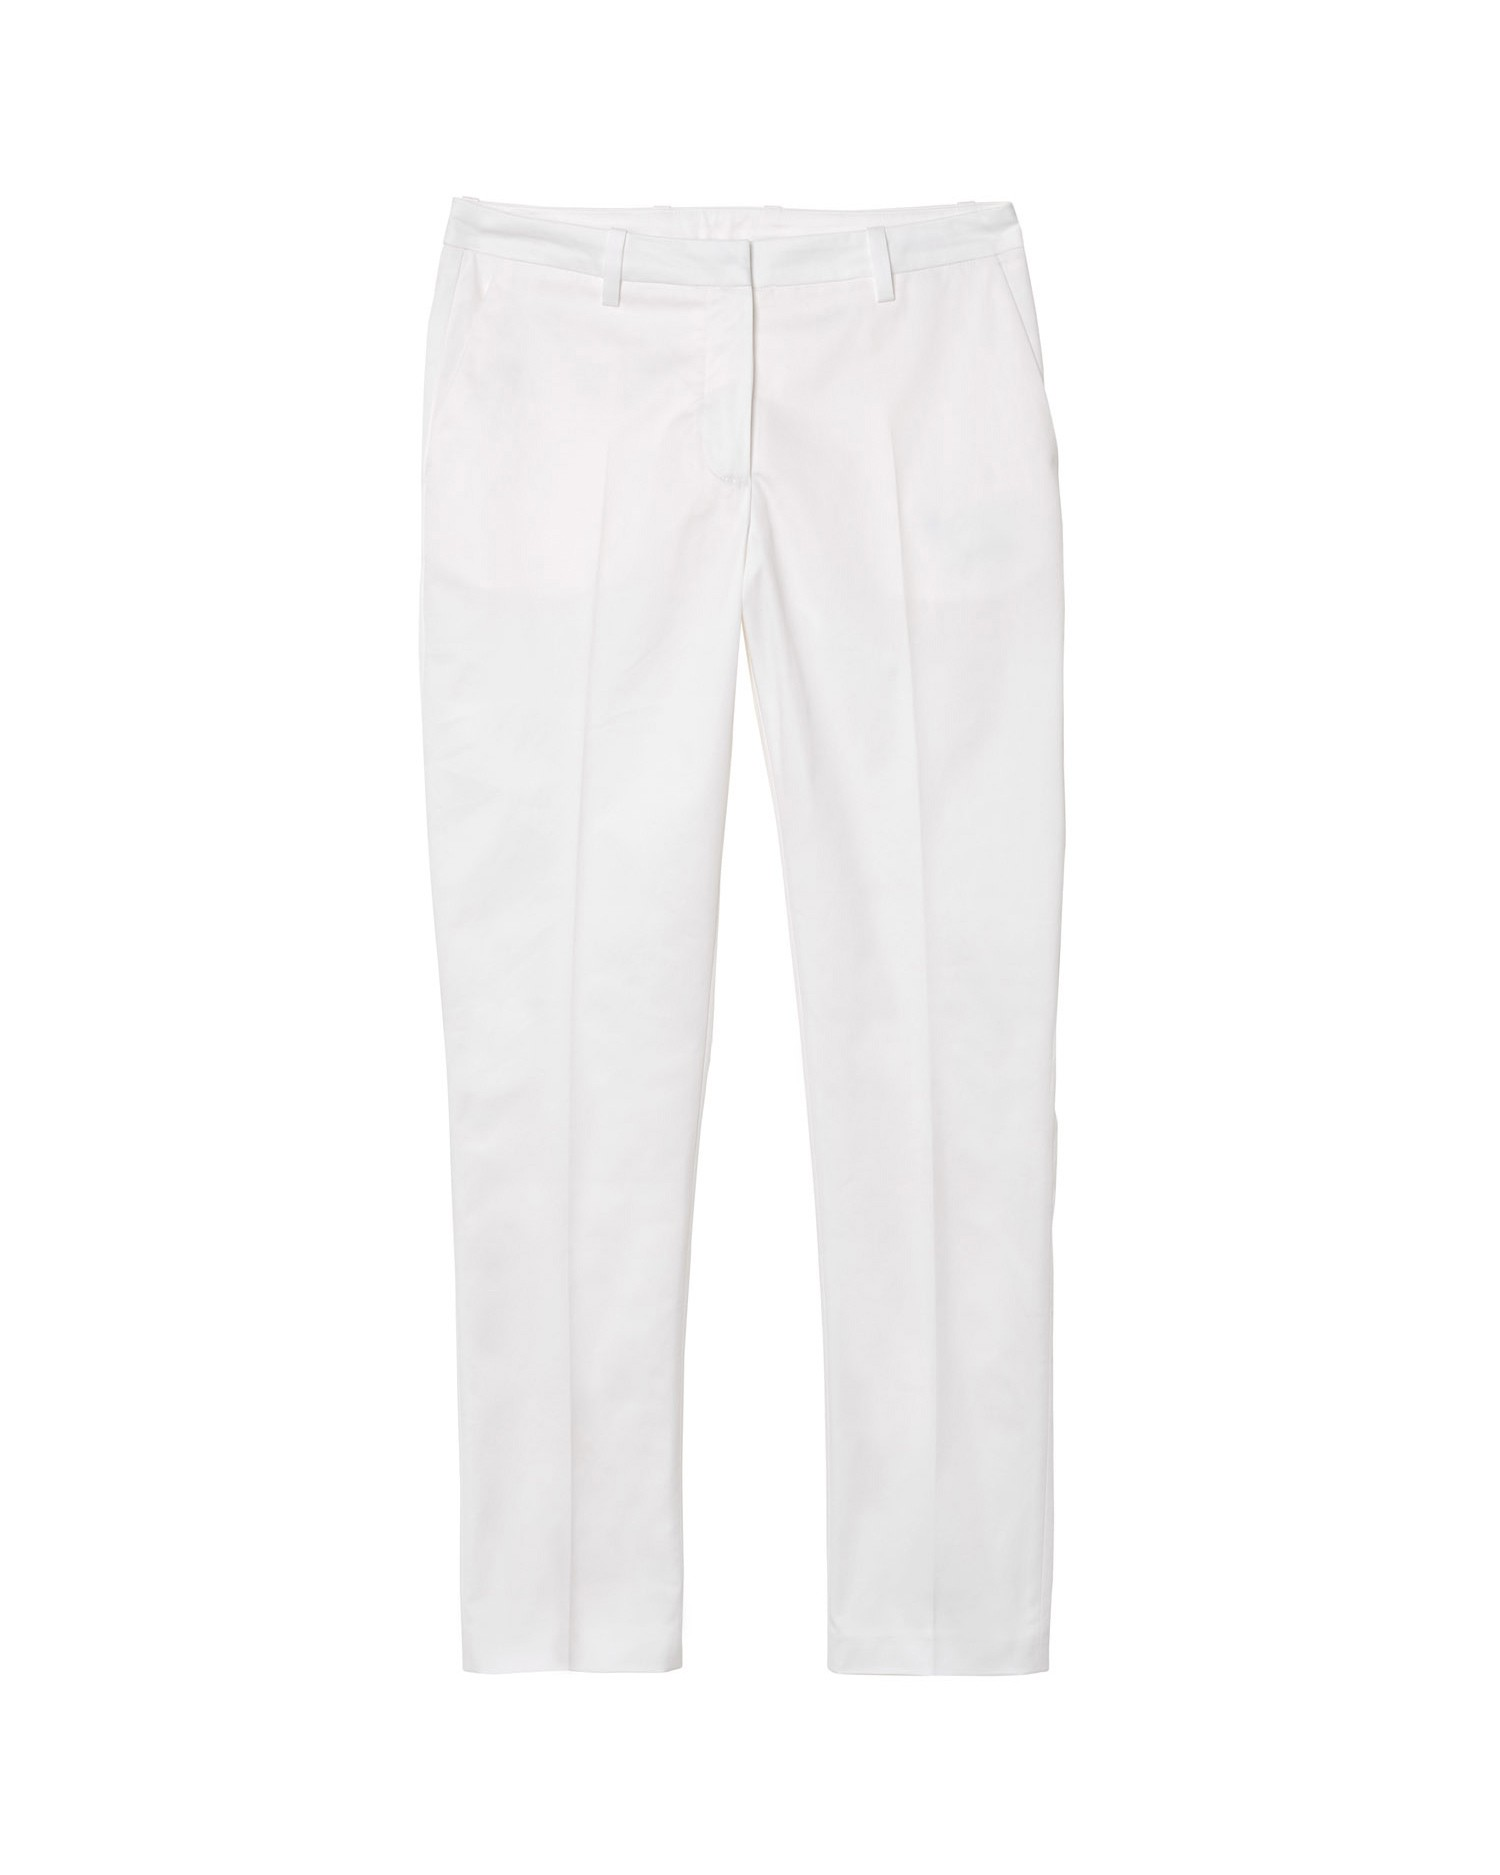 GANT Women's G1. Tp Cool Commuter Slack Pants - 414949